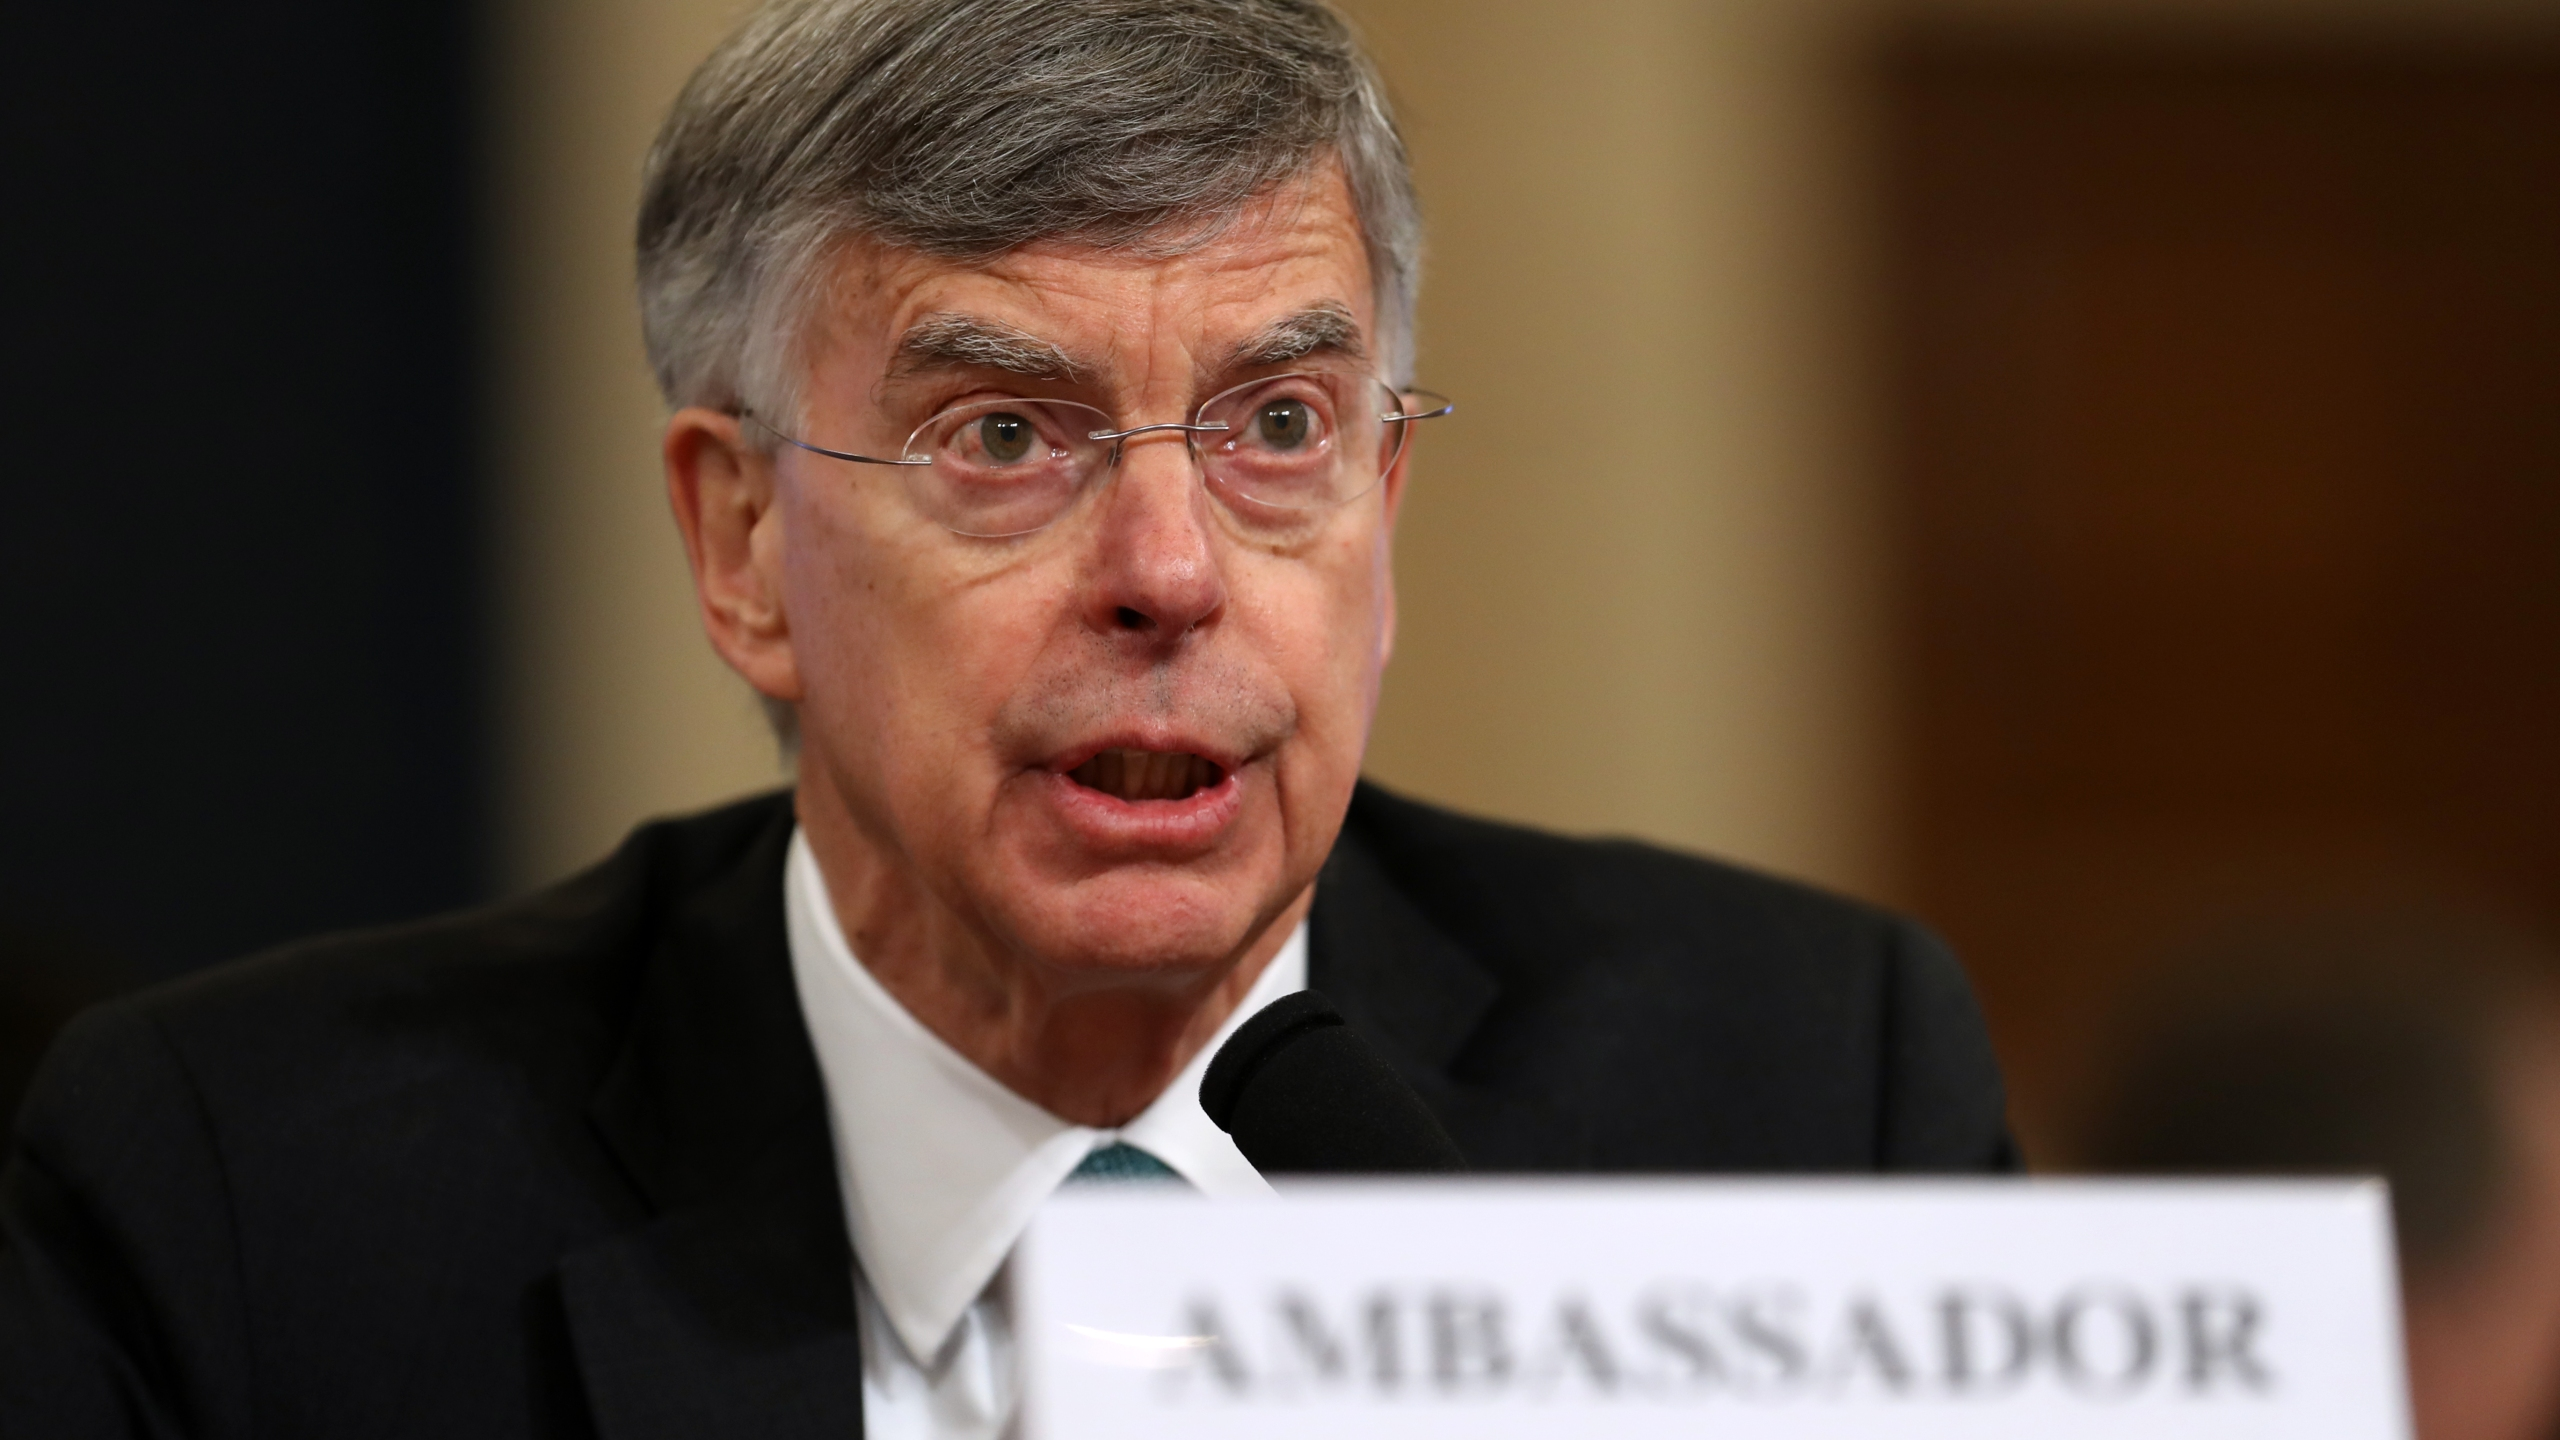 Top U.S. diplomat in Ukraine William B. Taylor Jr. testifies before the House Intelligence Committee in the Longworth House Office Building on Capitol Hill on Nov. 13, 2019 in Washington, D.C. (Credit: Chip Somodevilla/Getty Images)